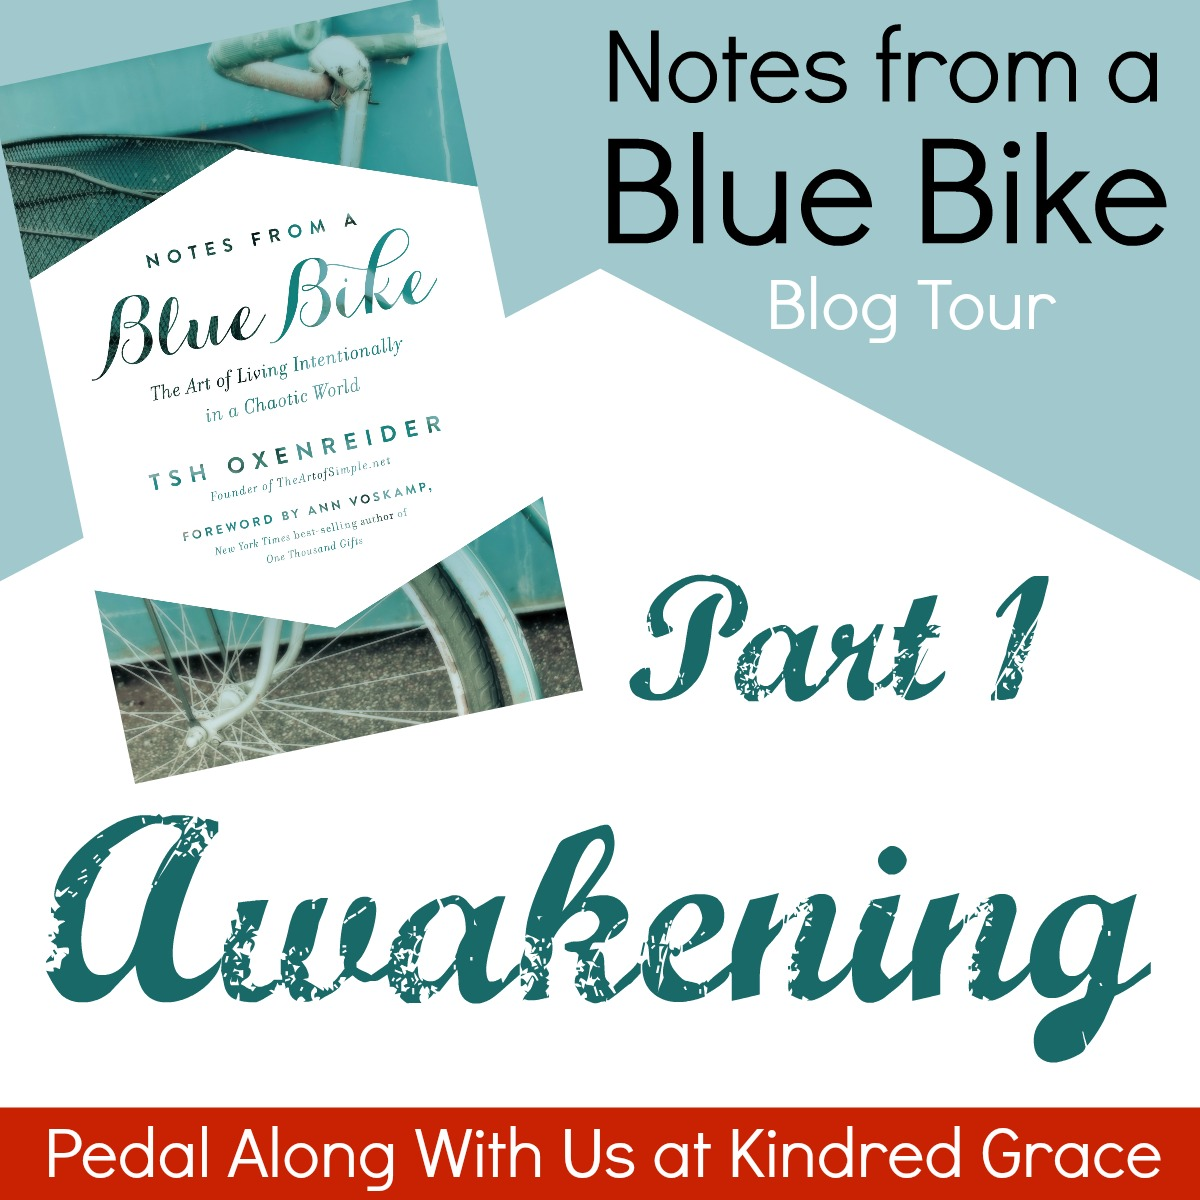 Notes from a Blue Bike, Part 1: The Awakening